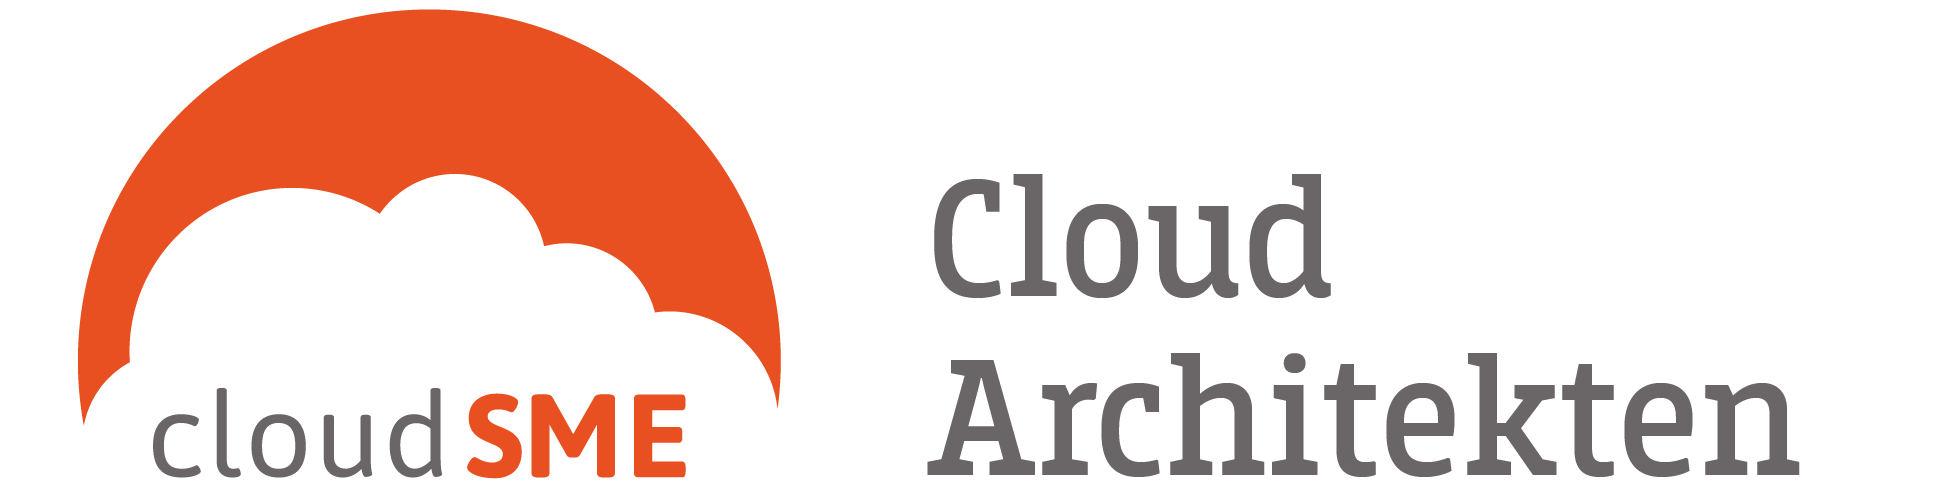 cloudSME – Cloud Architekten